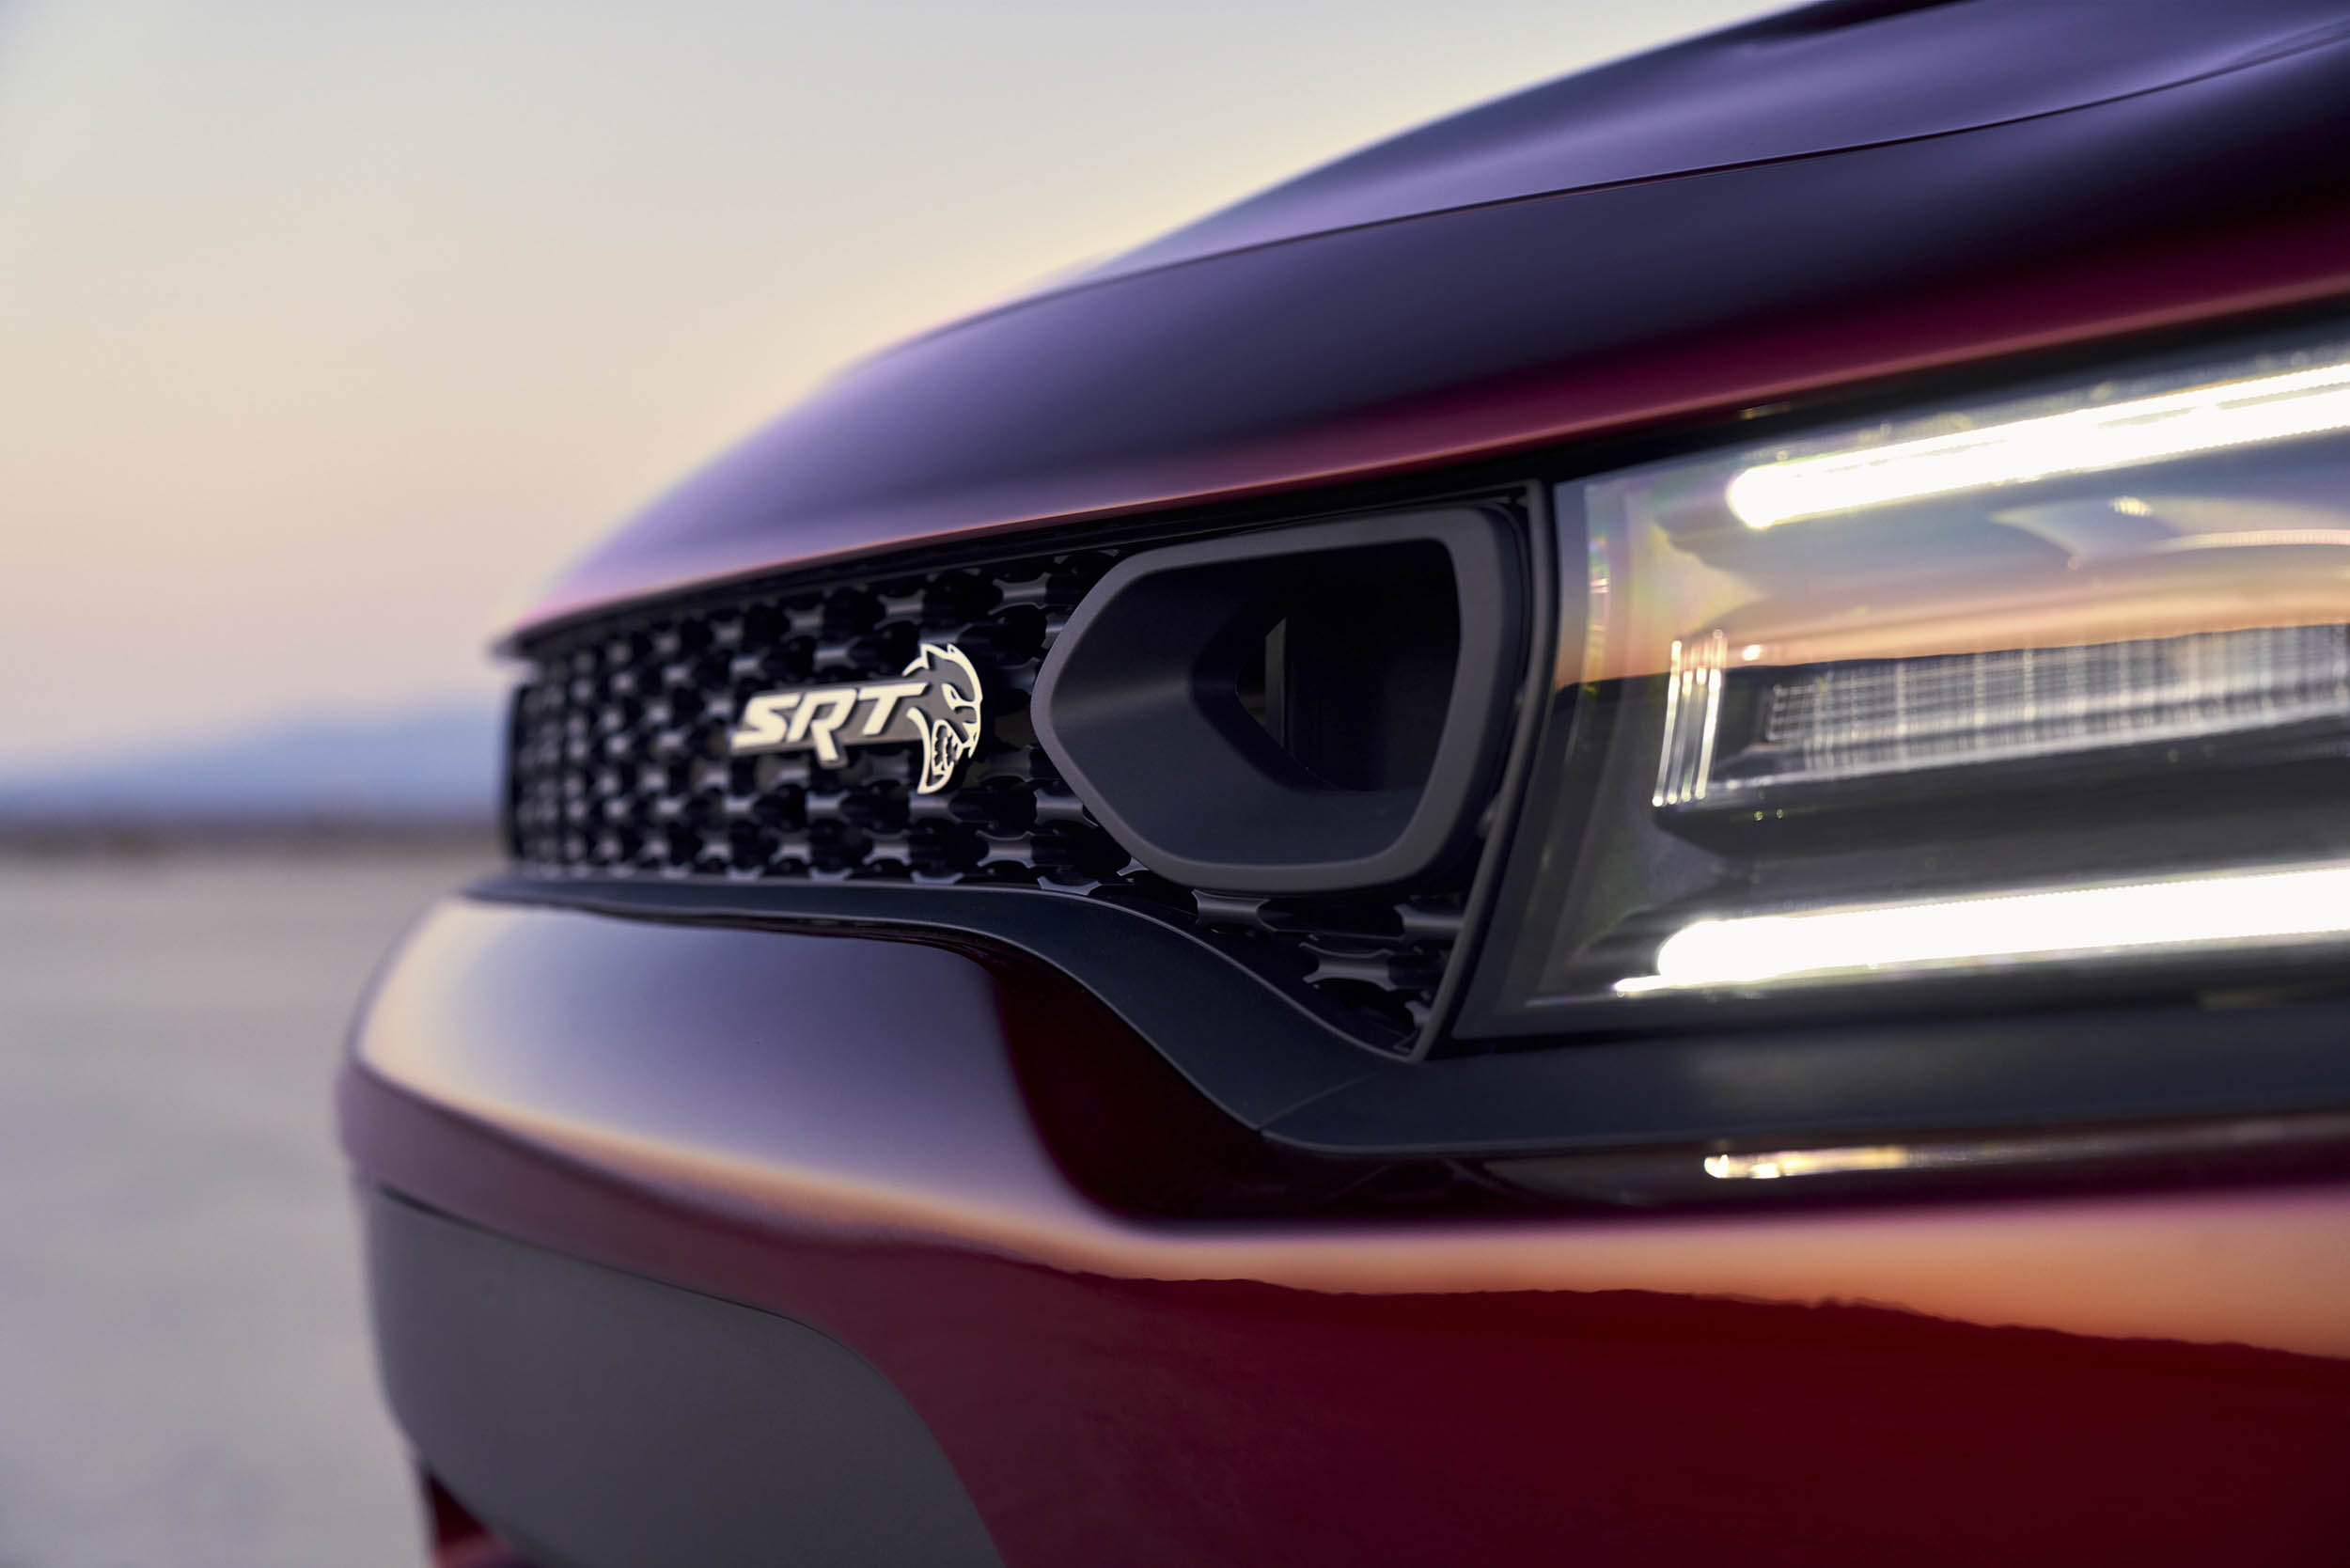 2019 Dodge Charger SRT Hellcat featuring new performance grille with dual air inlets